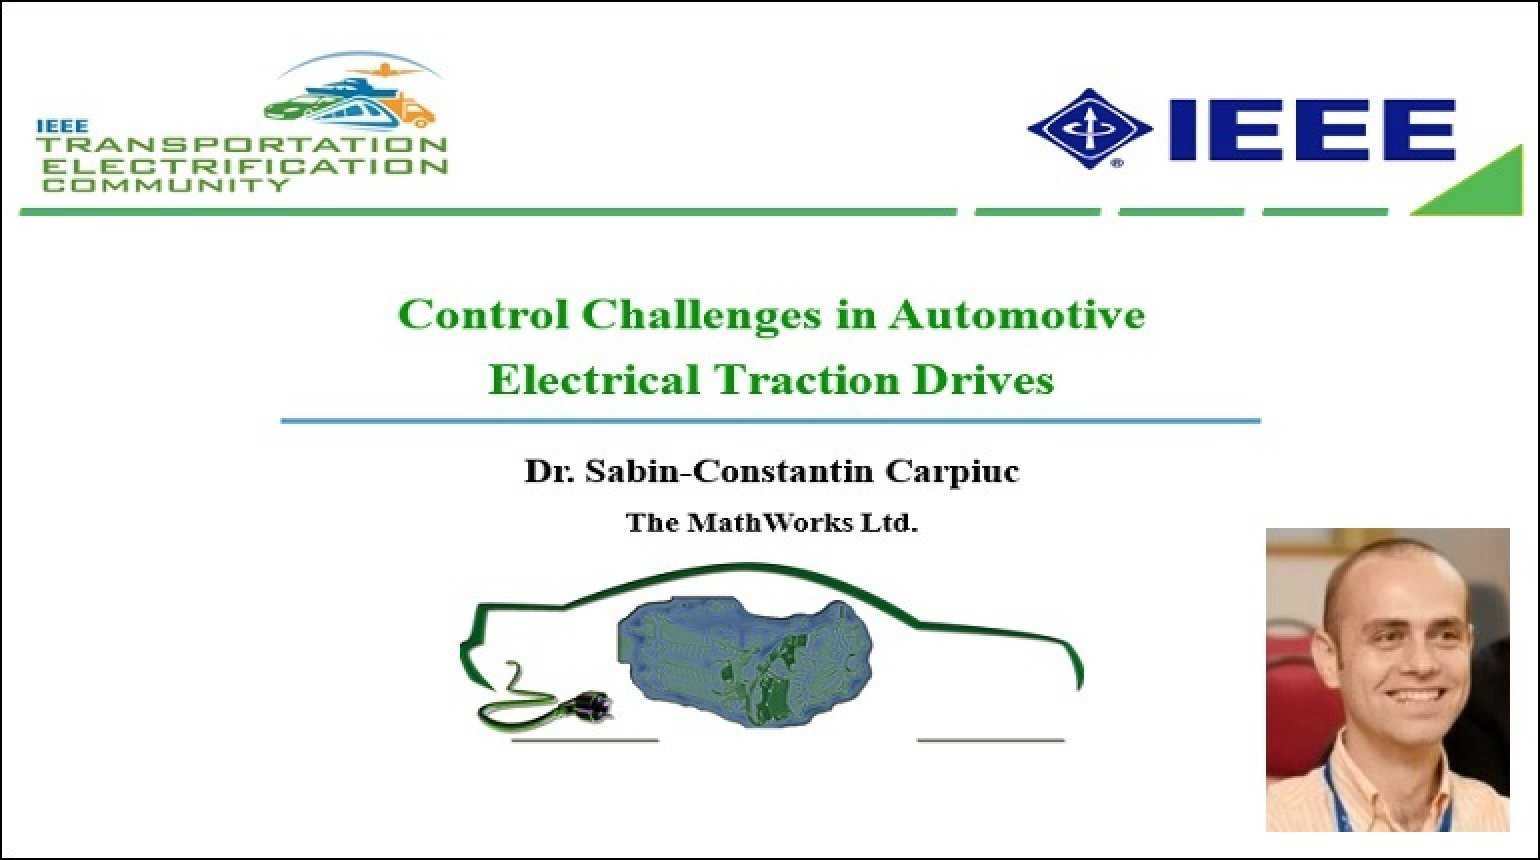 Video - Control Challenges in Automotive Electrical Traction Drives